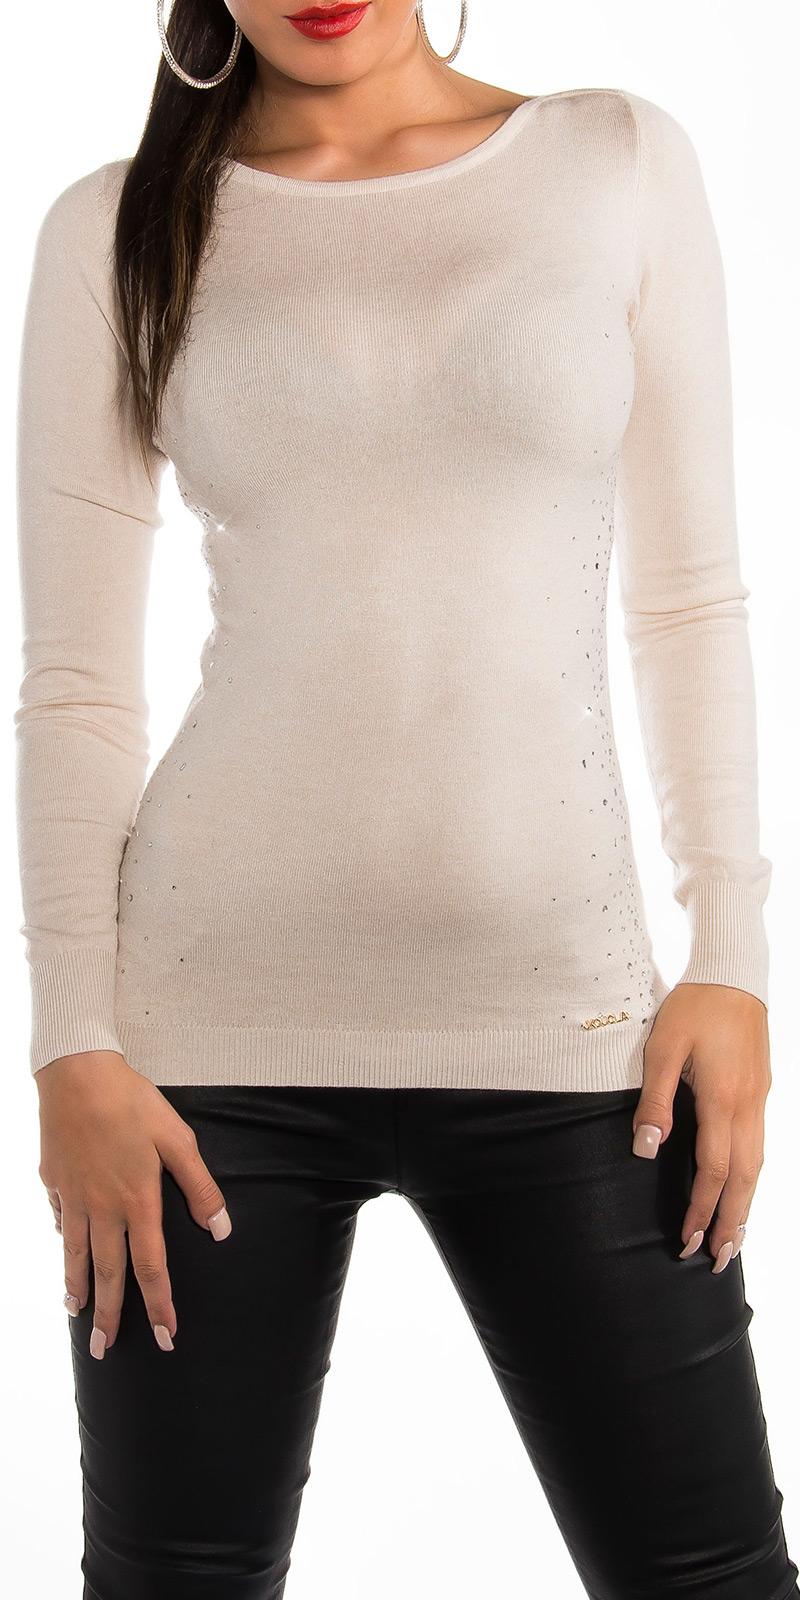 ookoucla_jumper_with_wings_and__rhinestones__color_beige_size_onesize_0000isf8237_beige_8